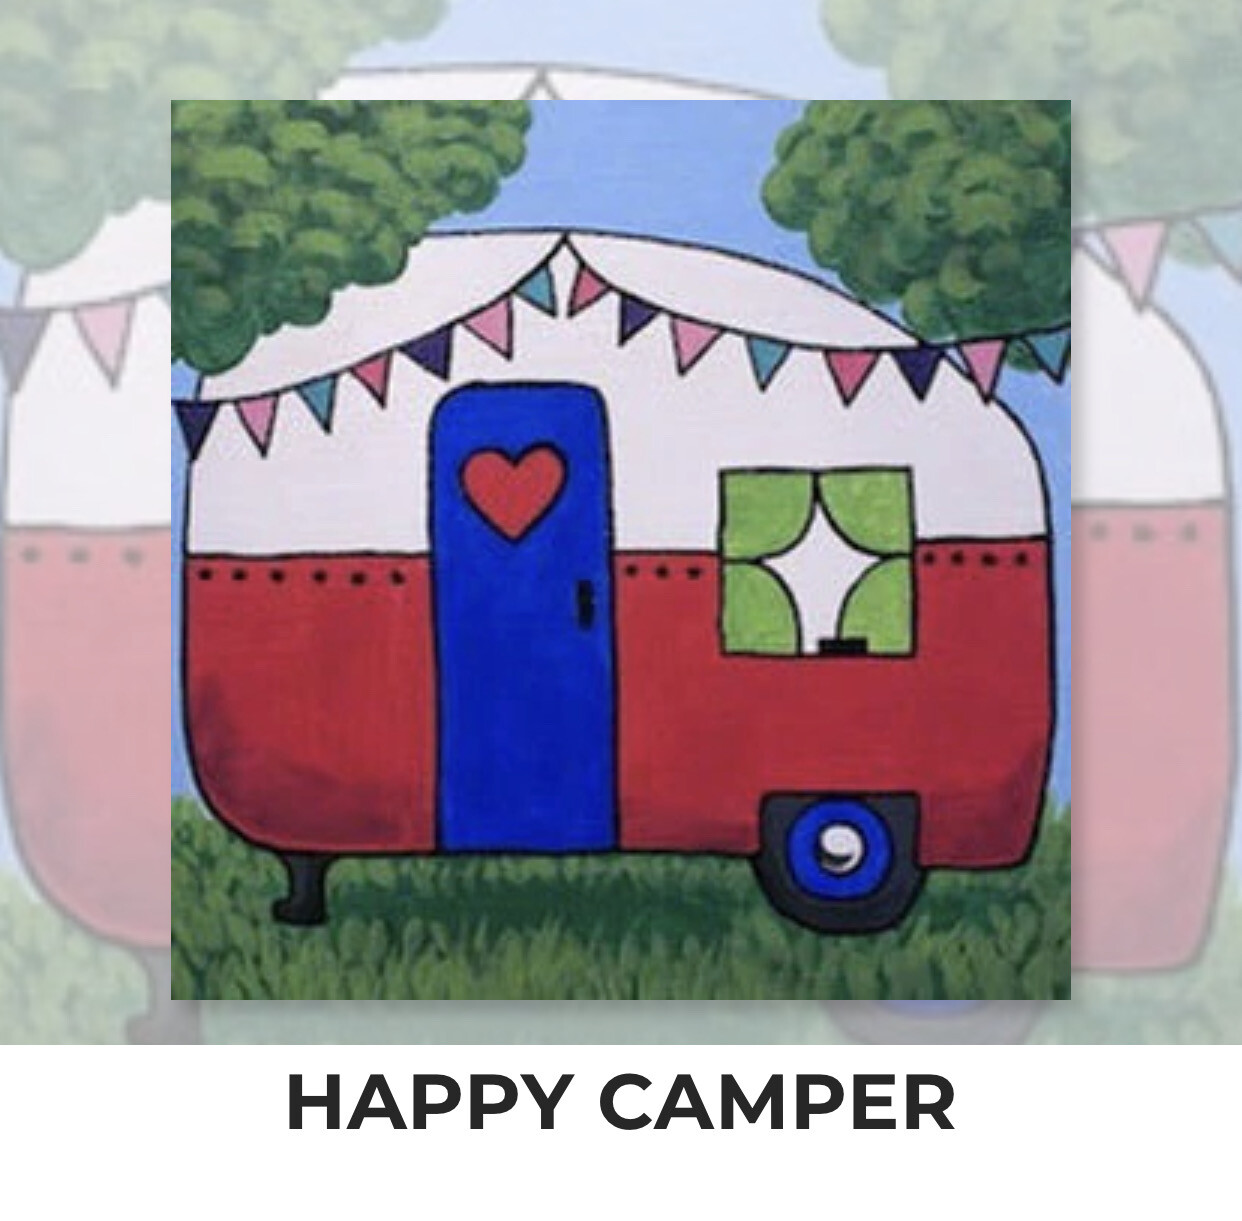 Happy Camper KIDS Acrylic Paint On Canvas DIY Art Kit - 3 Week Special Order